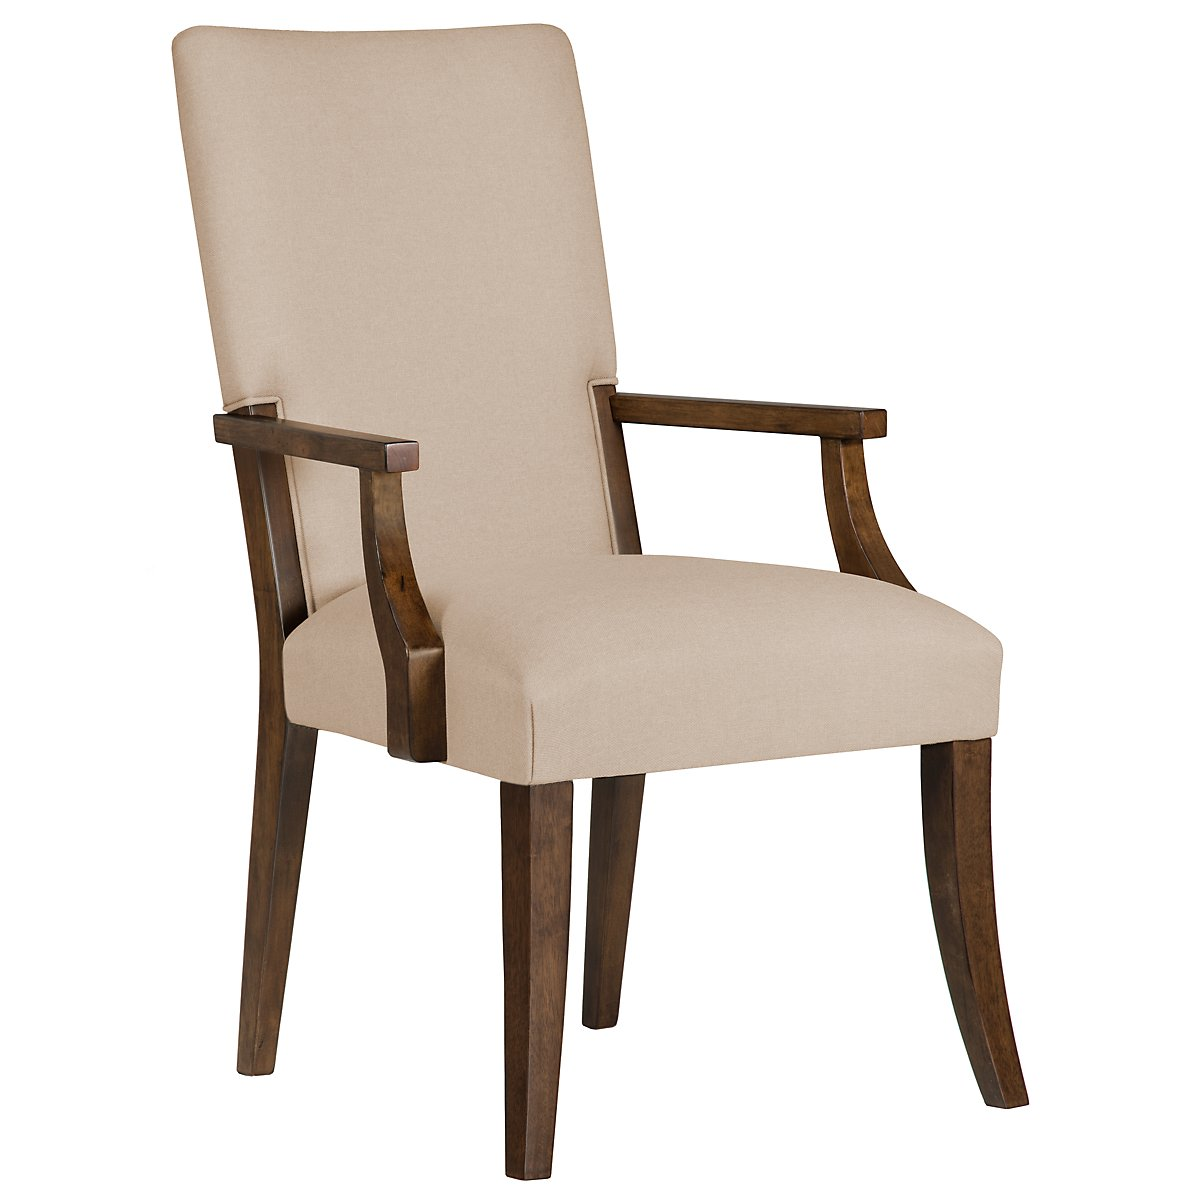 Savoy Mid Tone Upholstered Upholstered Arm Chair